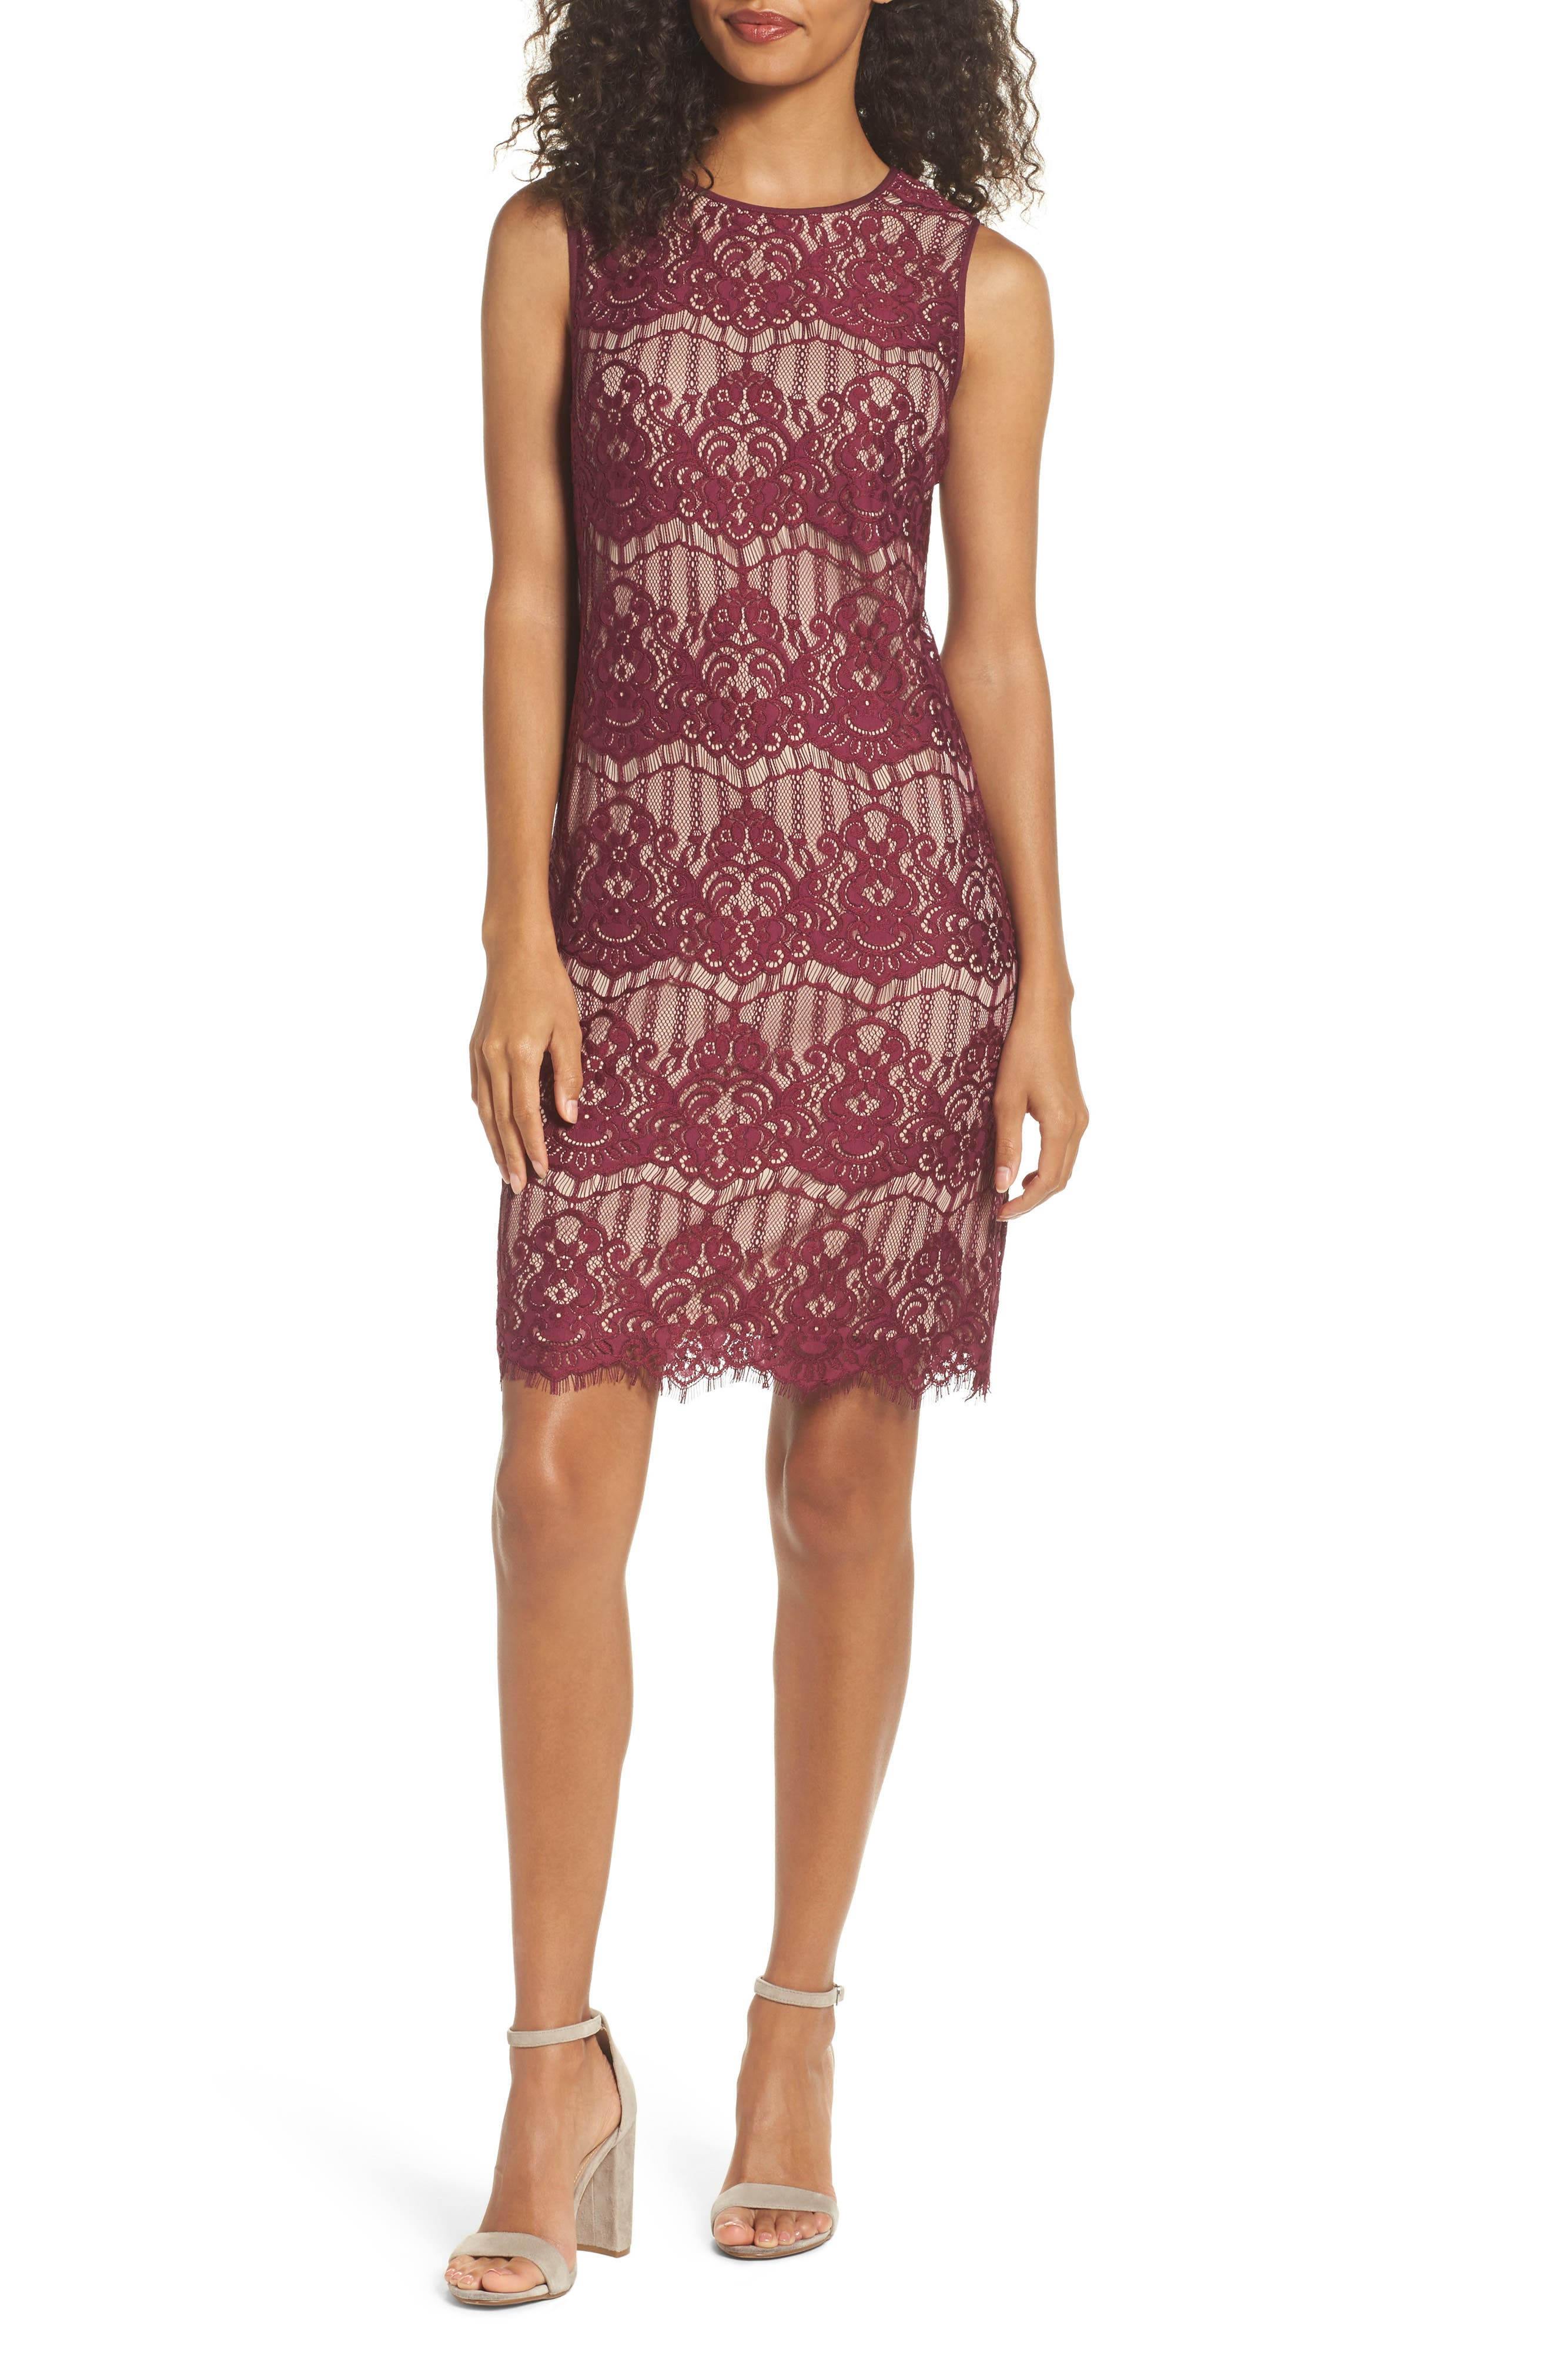 Scalloped Lace Sheath Dress,                             Main thumbnail 1, color,                             Burgundy